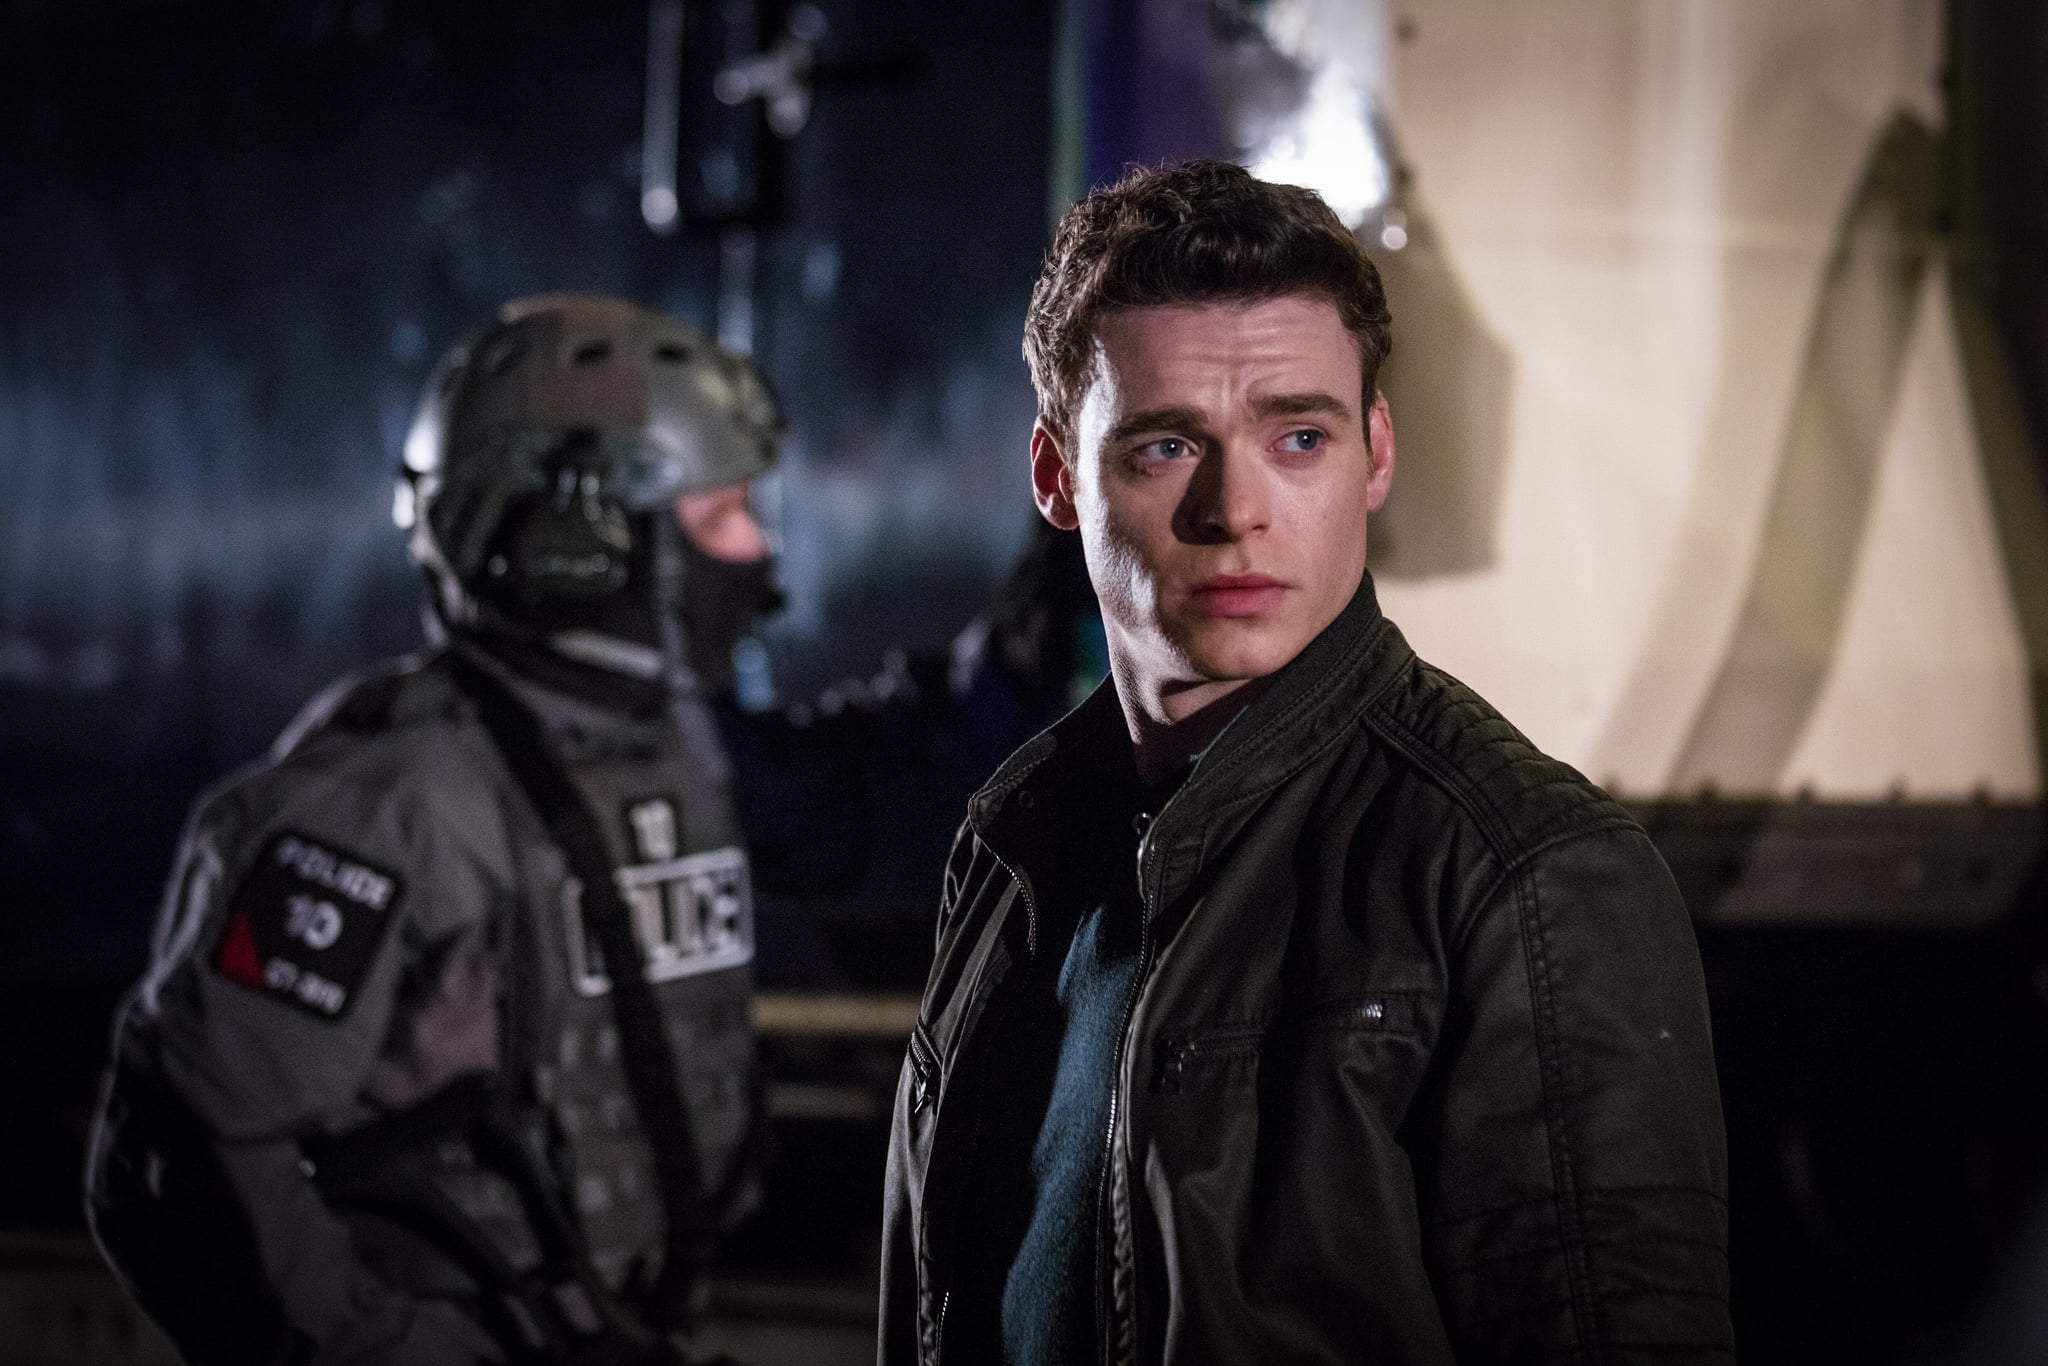 BODYGUARD, Richard Madden, 'Episode 1', (Season 1, ep. 101, aired in UK on Aug. 26, 2018/airs in US on Oct. 24, 2018). photo: Sophie Mutevelian / Netflix/BBC / Courtesy: Everett Collection